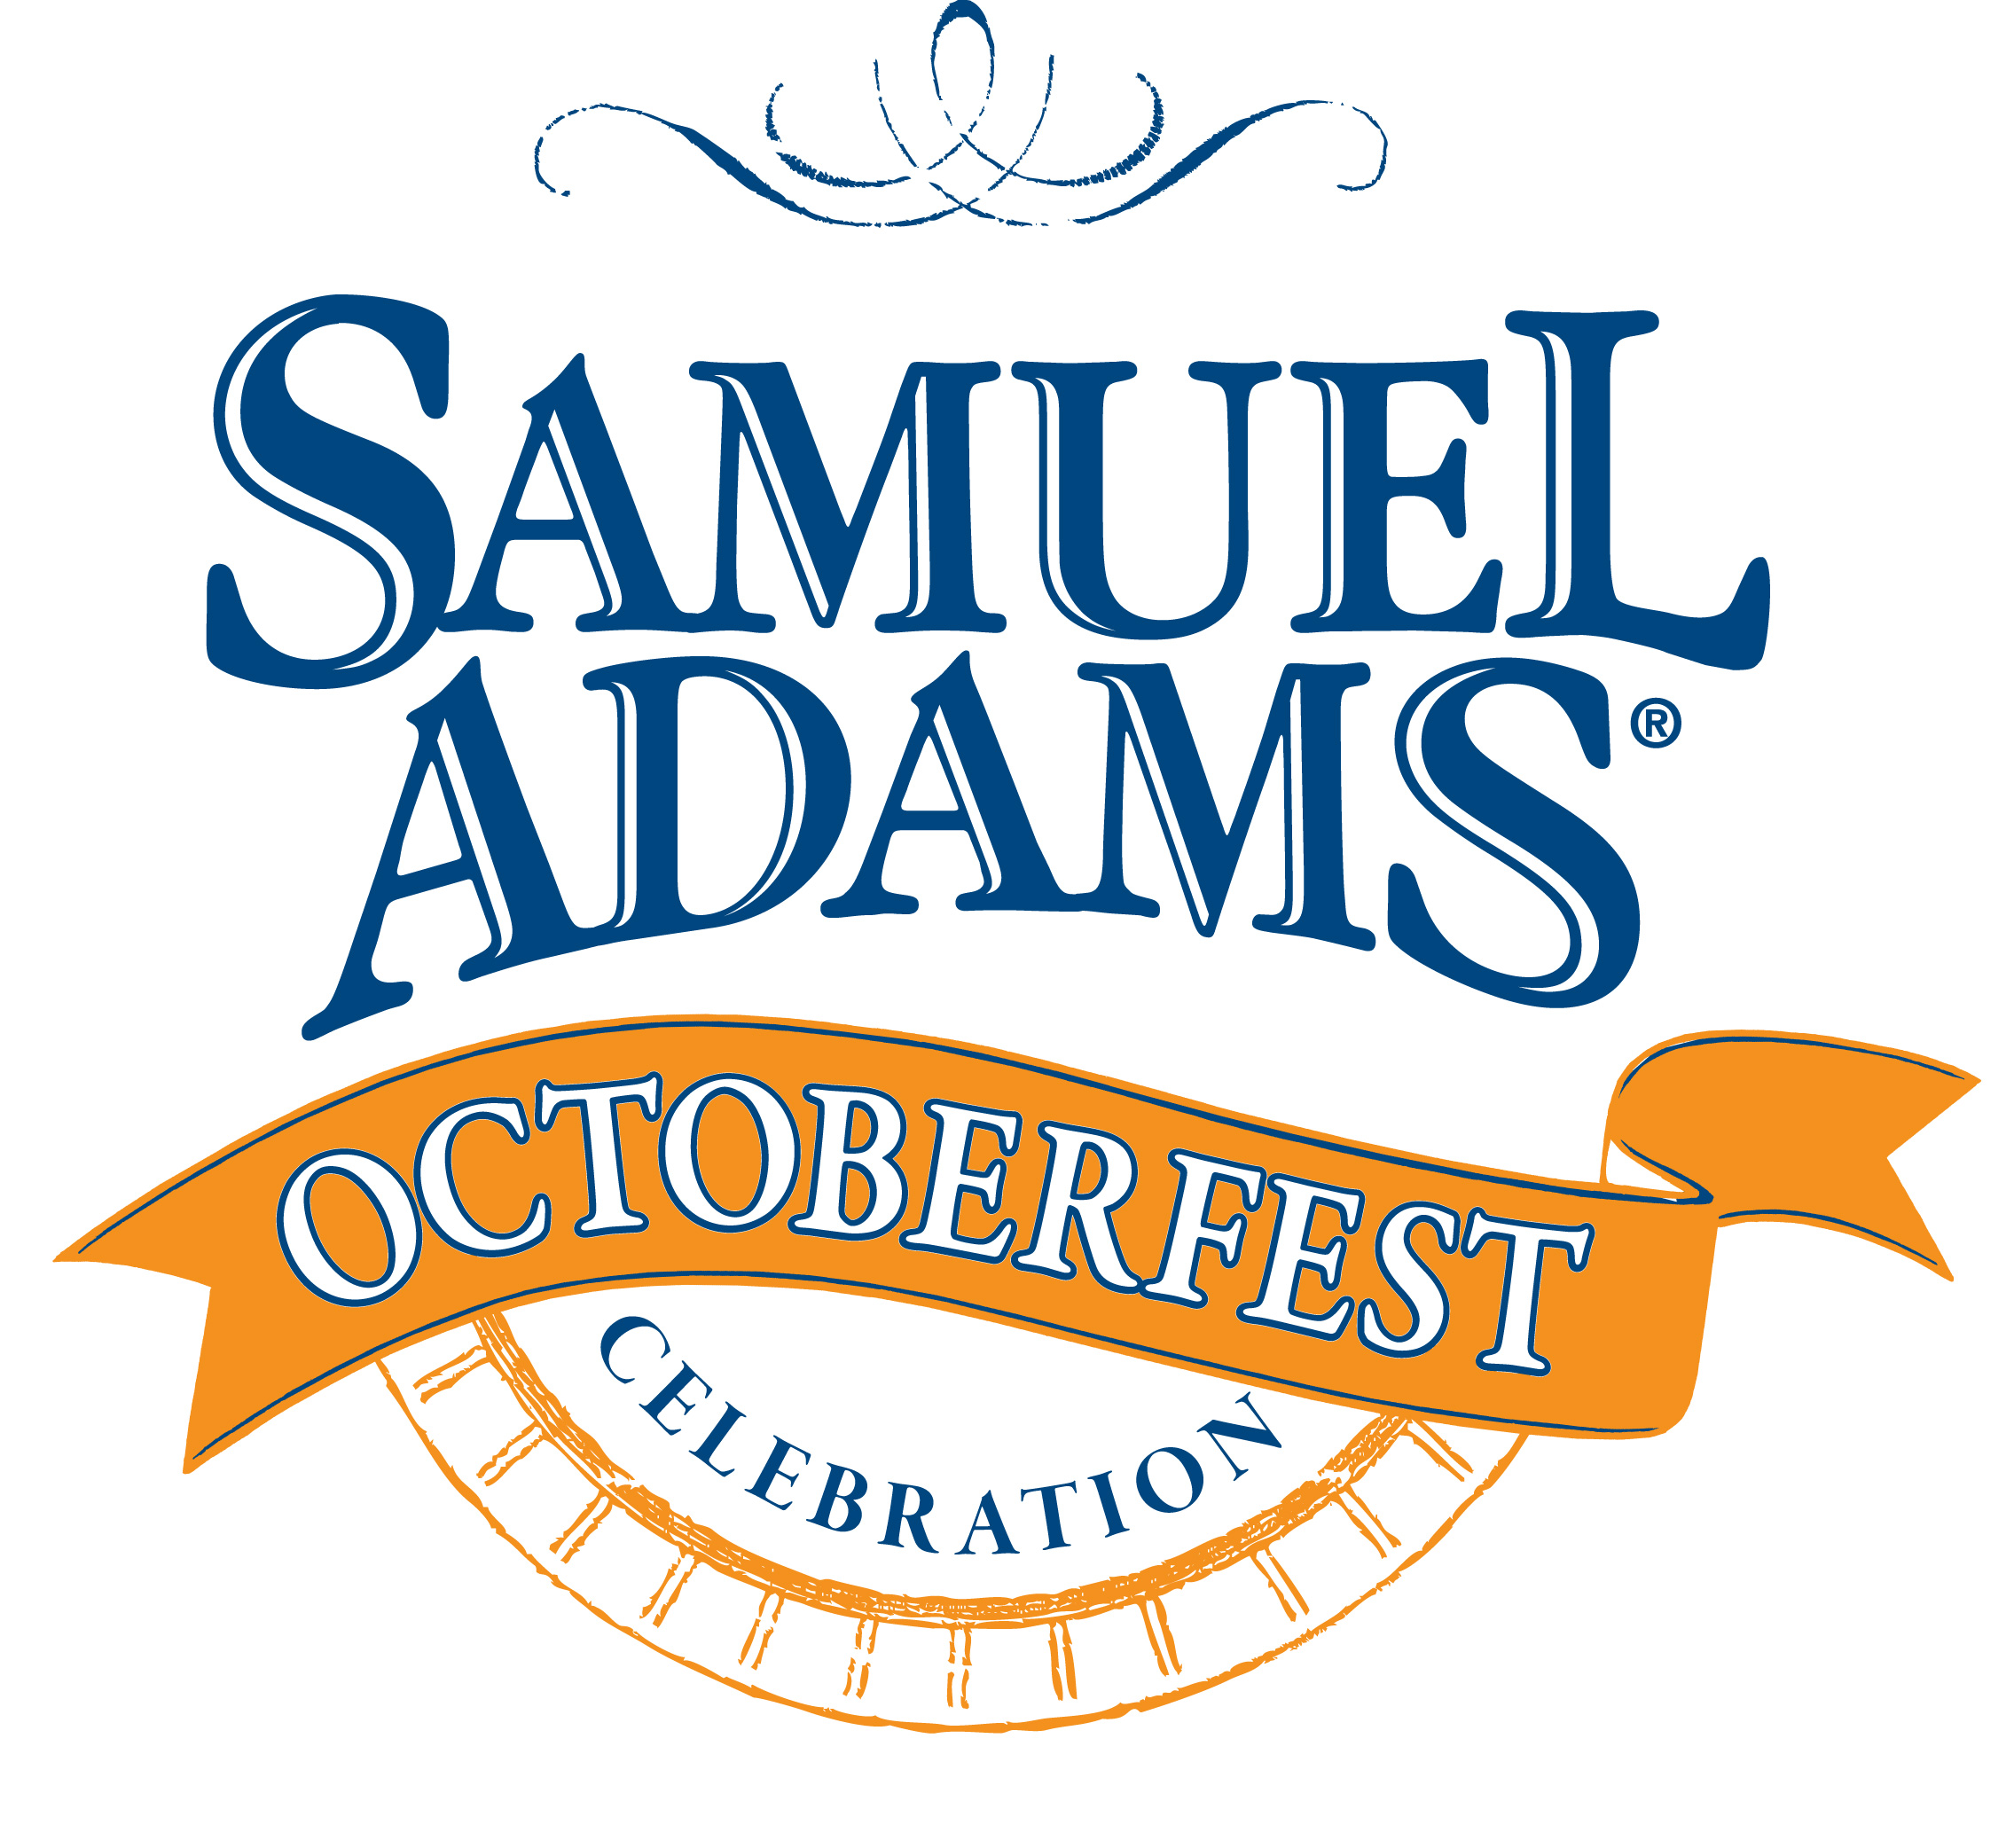 2012 Samuel Adams OctoberFest.